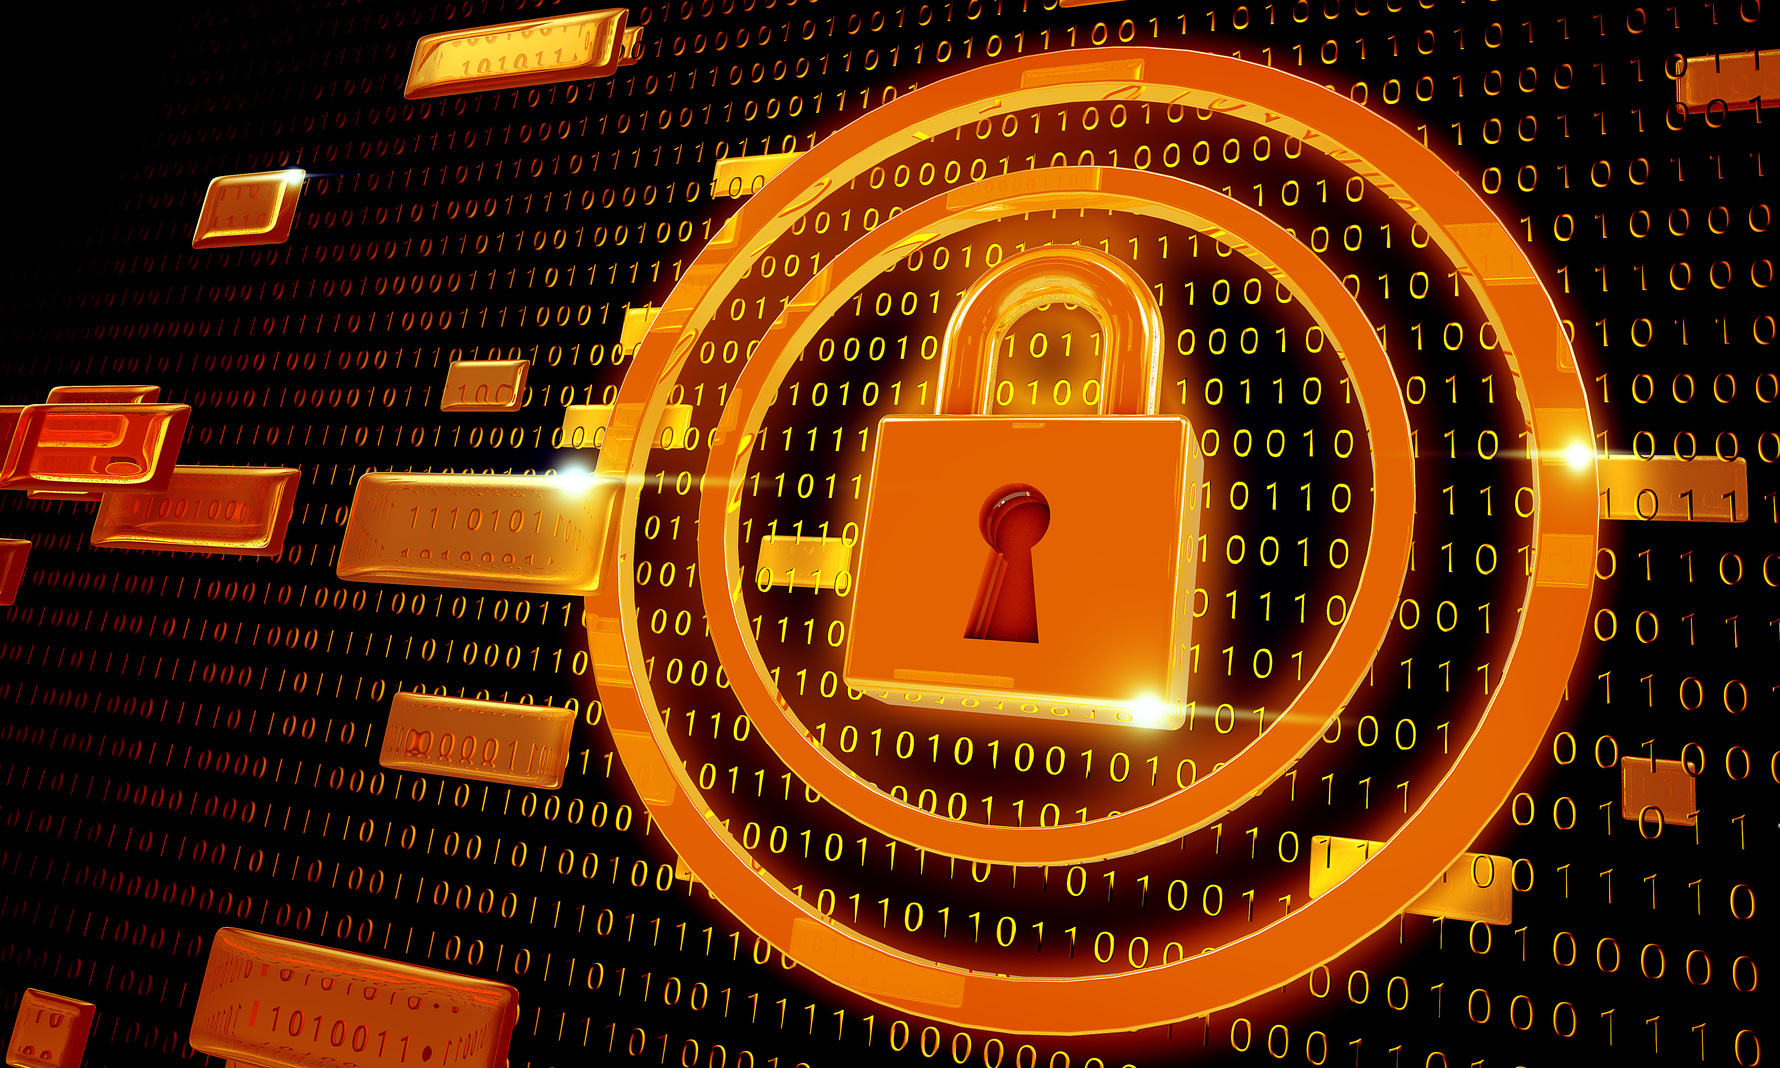 IT Security: Worthwhile Protection or Unneeded Expense - Compare Factory